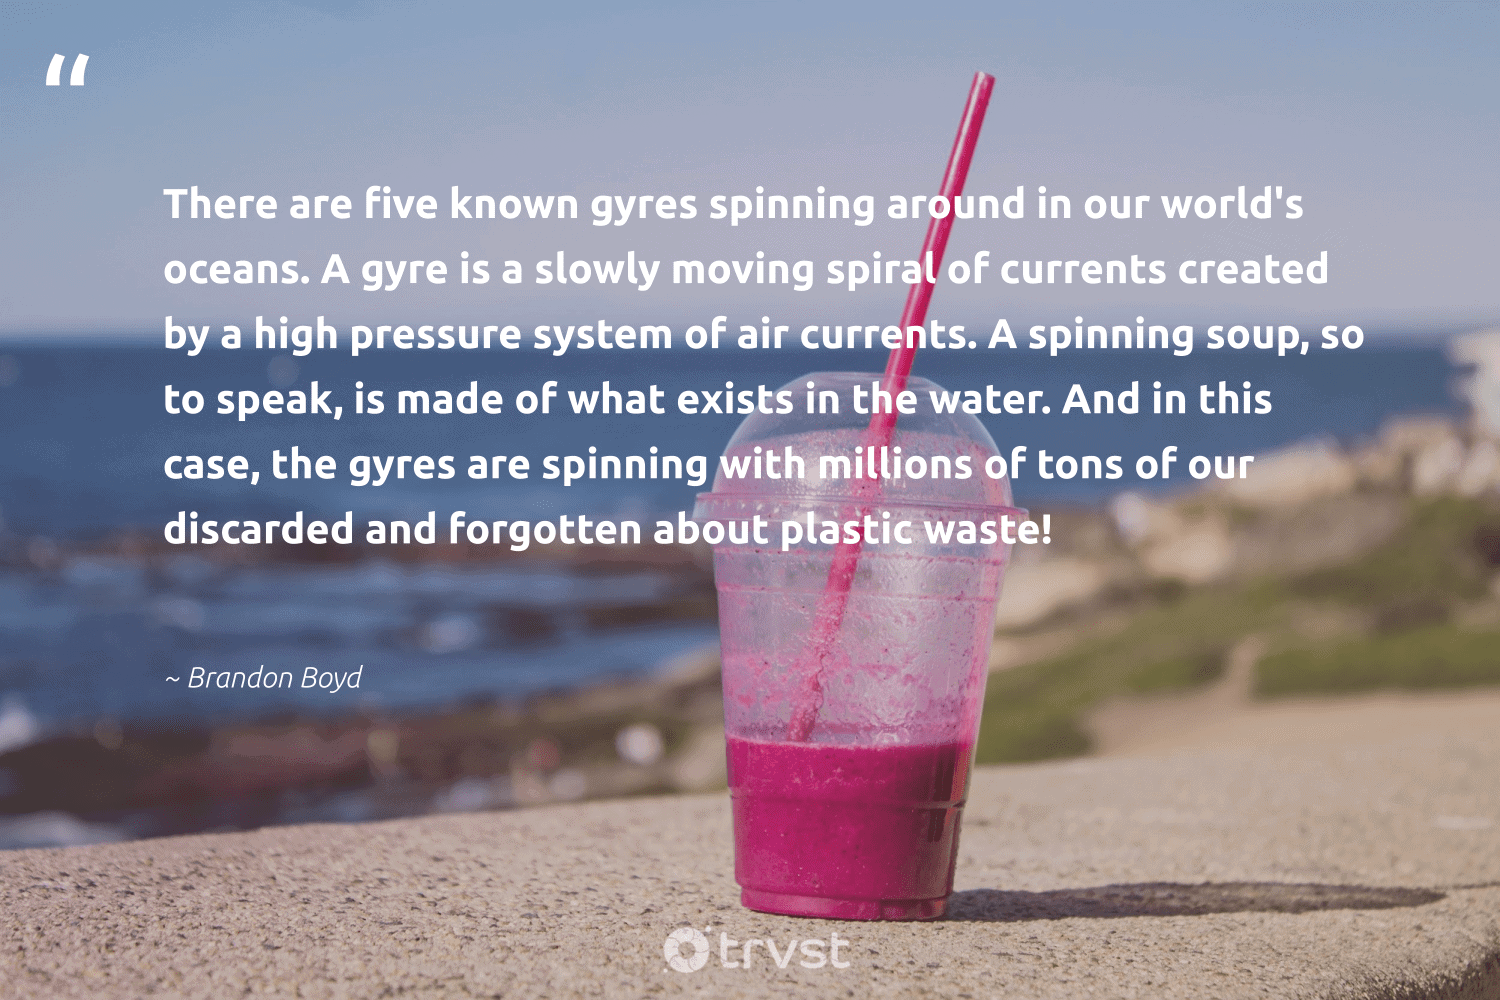 """""""There are five known gyres spinning around in our world's oceans. A gyre is a slowly moving spiral of currents created by a high pressure system of air currents. A spinning soup, so to speak, is made of what exists in the water. And in this case, the gyres are spinning with millions of tons of our discarded and forgotten about plastic waste!""""  - Brandon Boyd #trvst #quotes #plasticwaste #plastic #water #ourplasticproblem #environment #dogood #socialchange #breakfreefromplastic #dosomething #sustainability"""